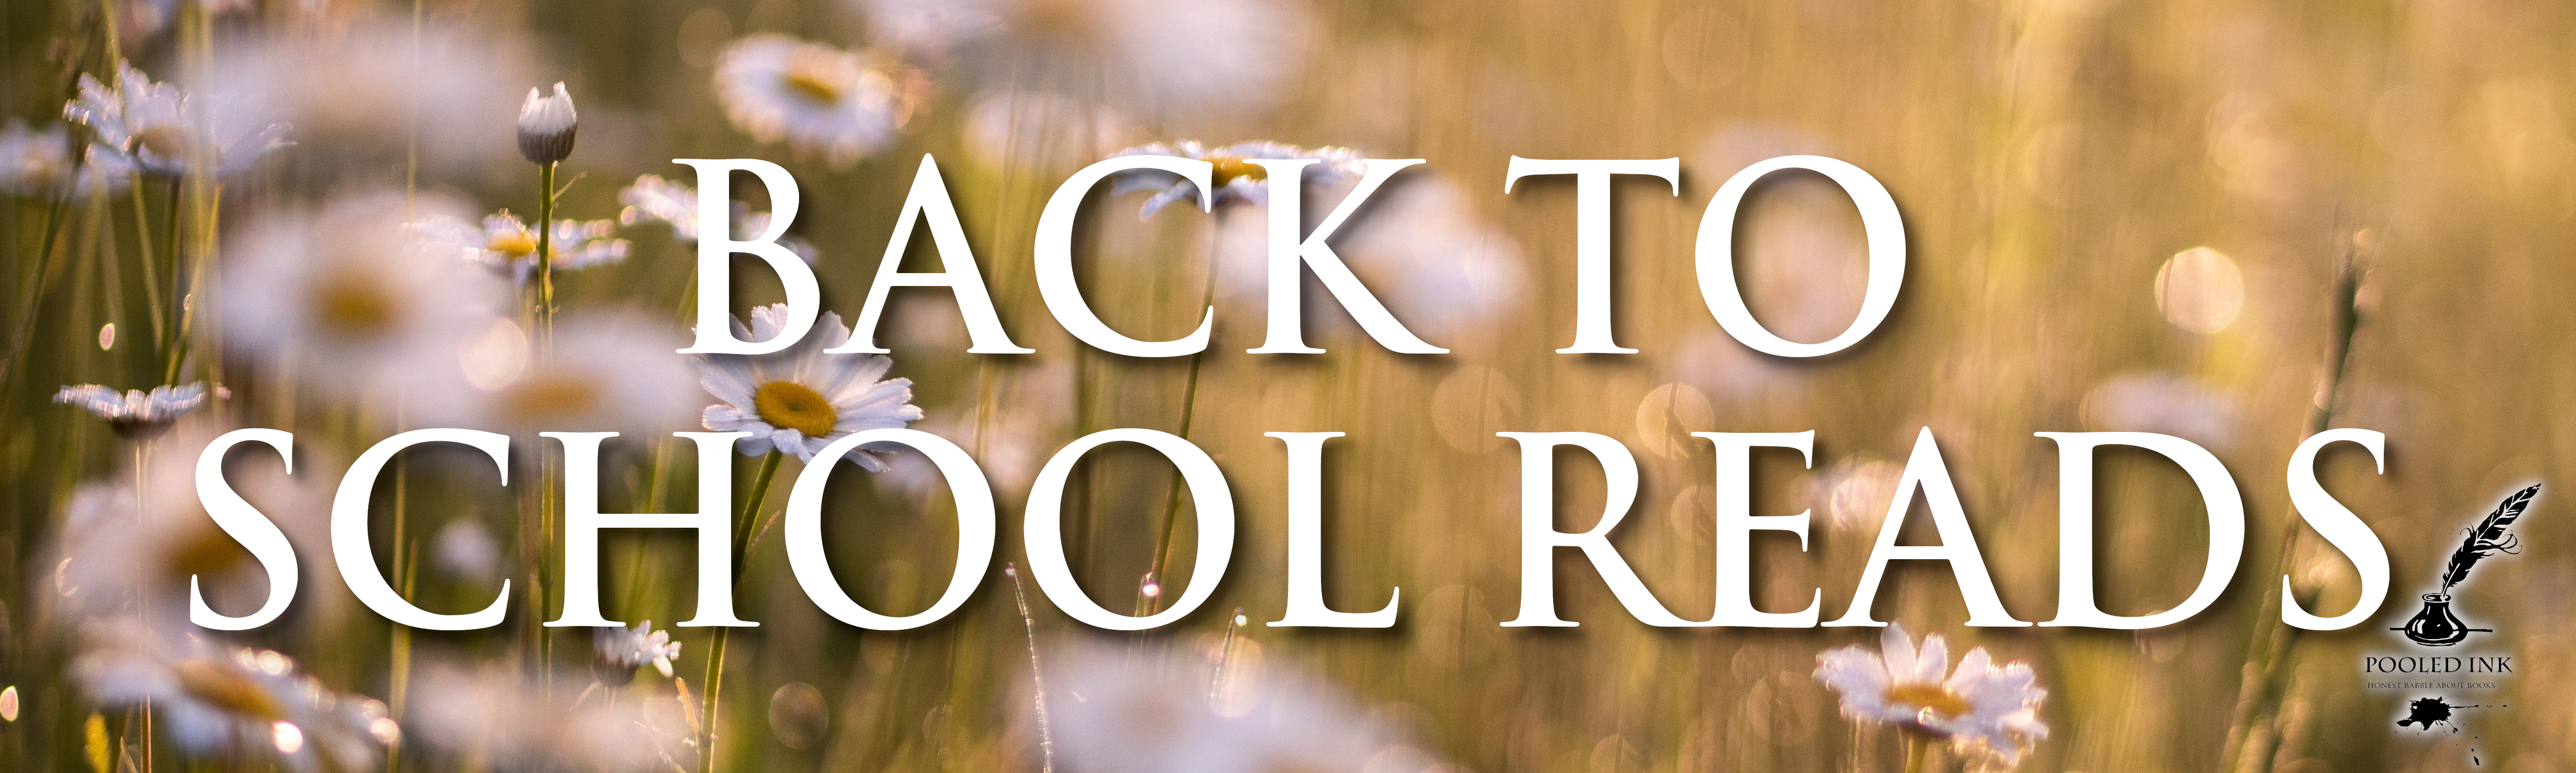 back to school reads banner